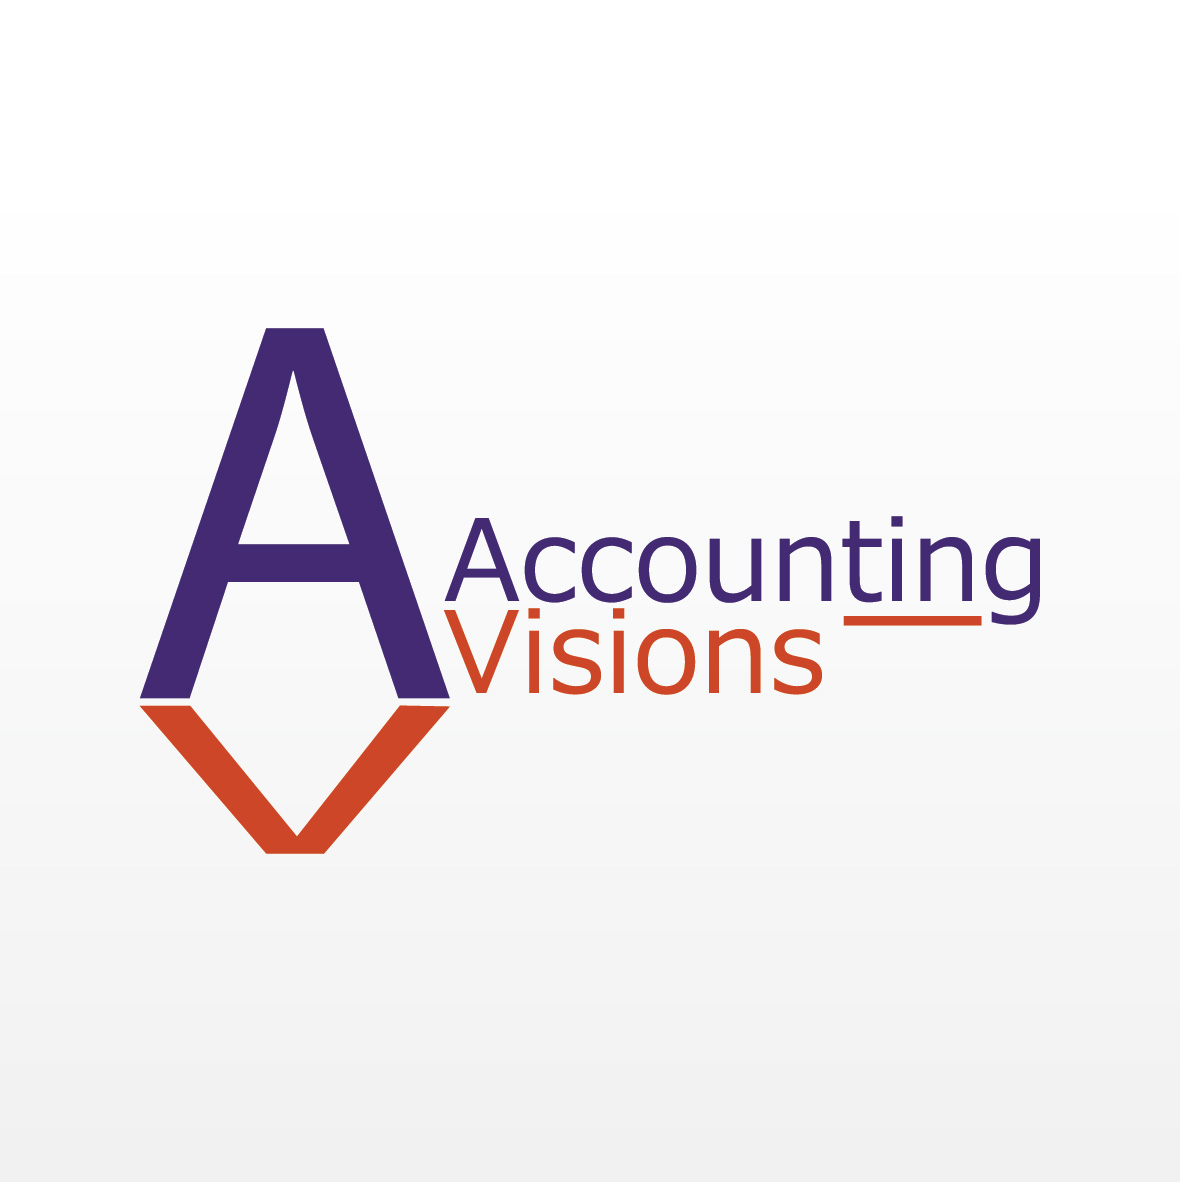 Logo Design by aesthetic-art - Entry No. 88 in the Logo Design Contest Accounting Visions.